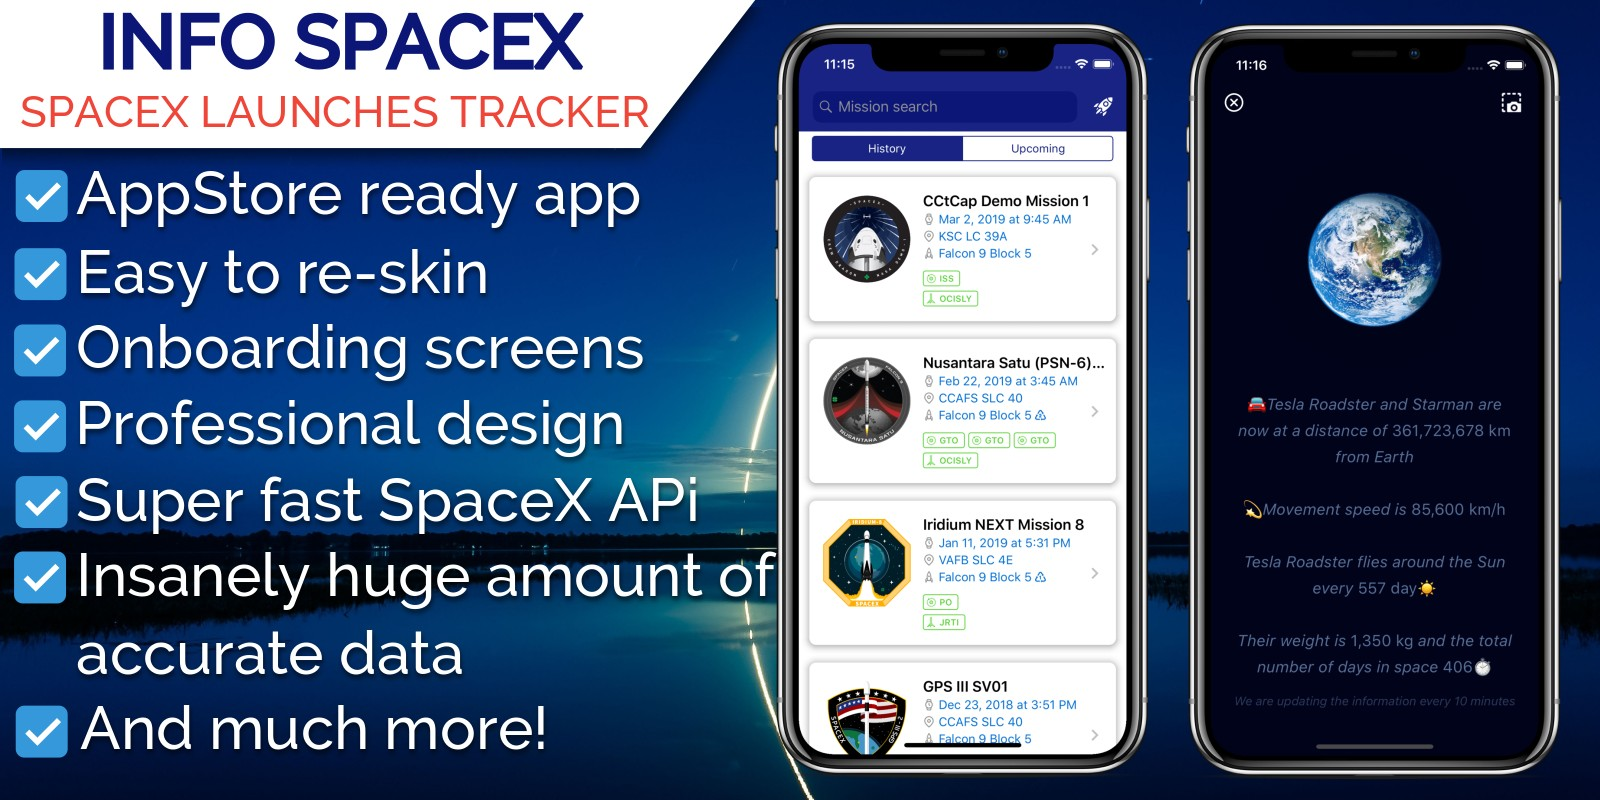 InfoSpace - iOS SpaceX Launches Tracker